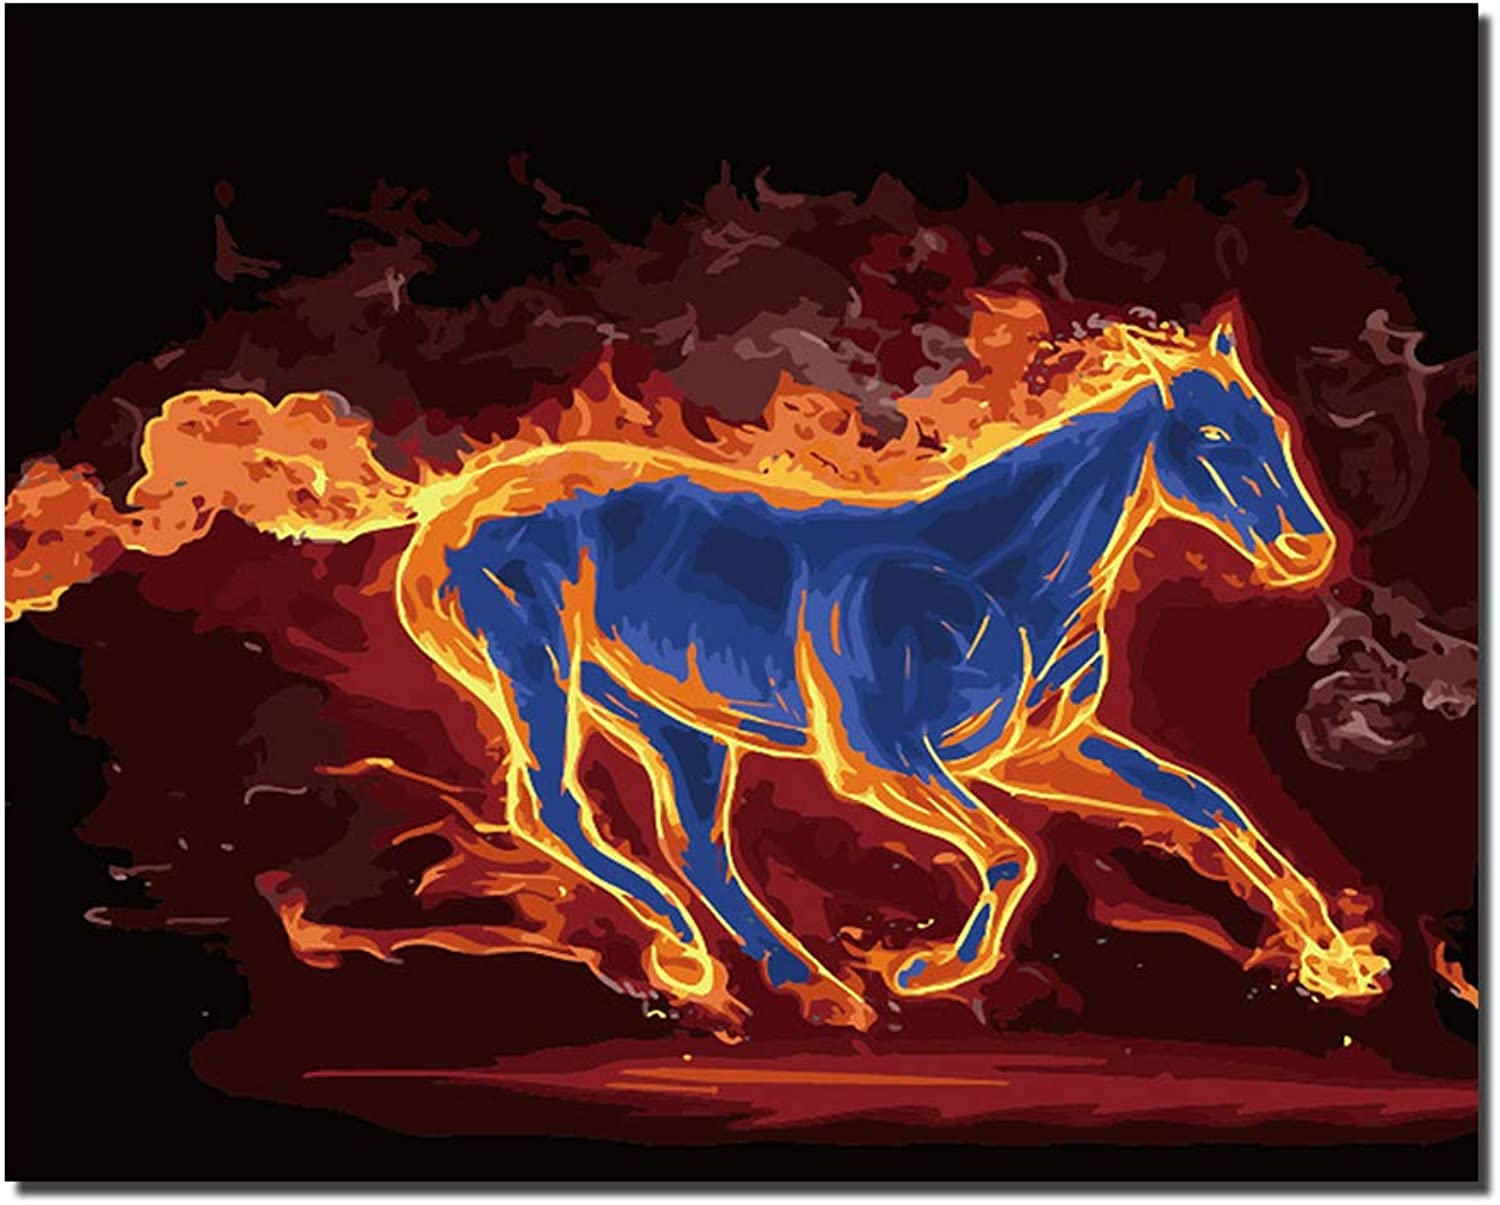 Flame Horse DIY Oil Painting color Set by Number 16x20 Inch Romantic Pattern Living Room Bedroom Office Home Decor with Inner Frame,framedcanvas